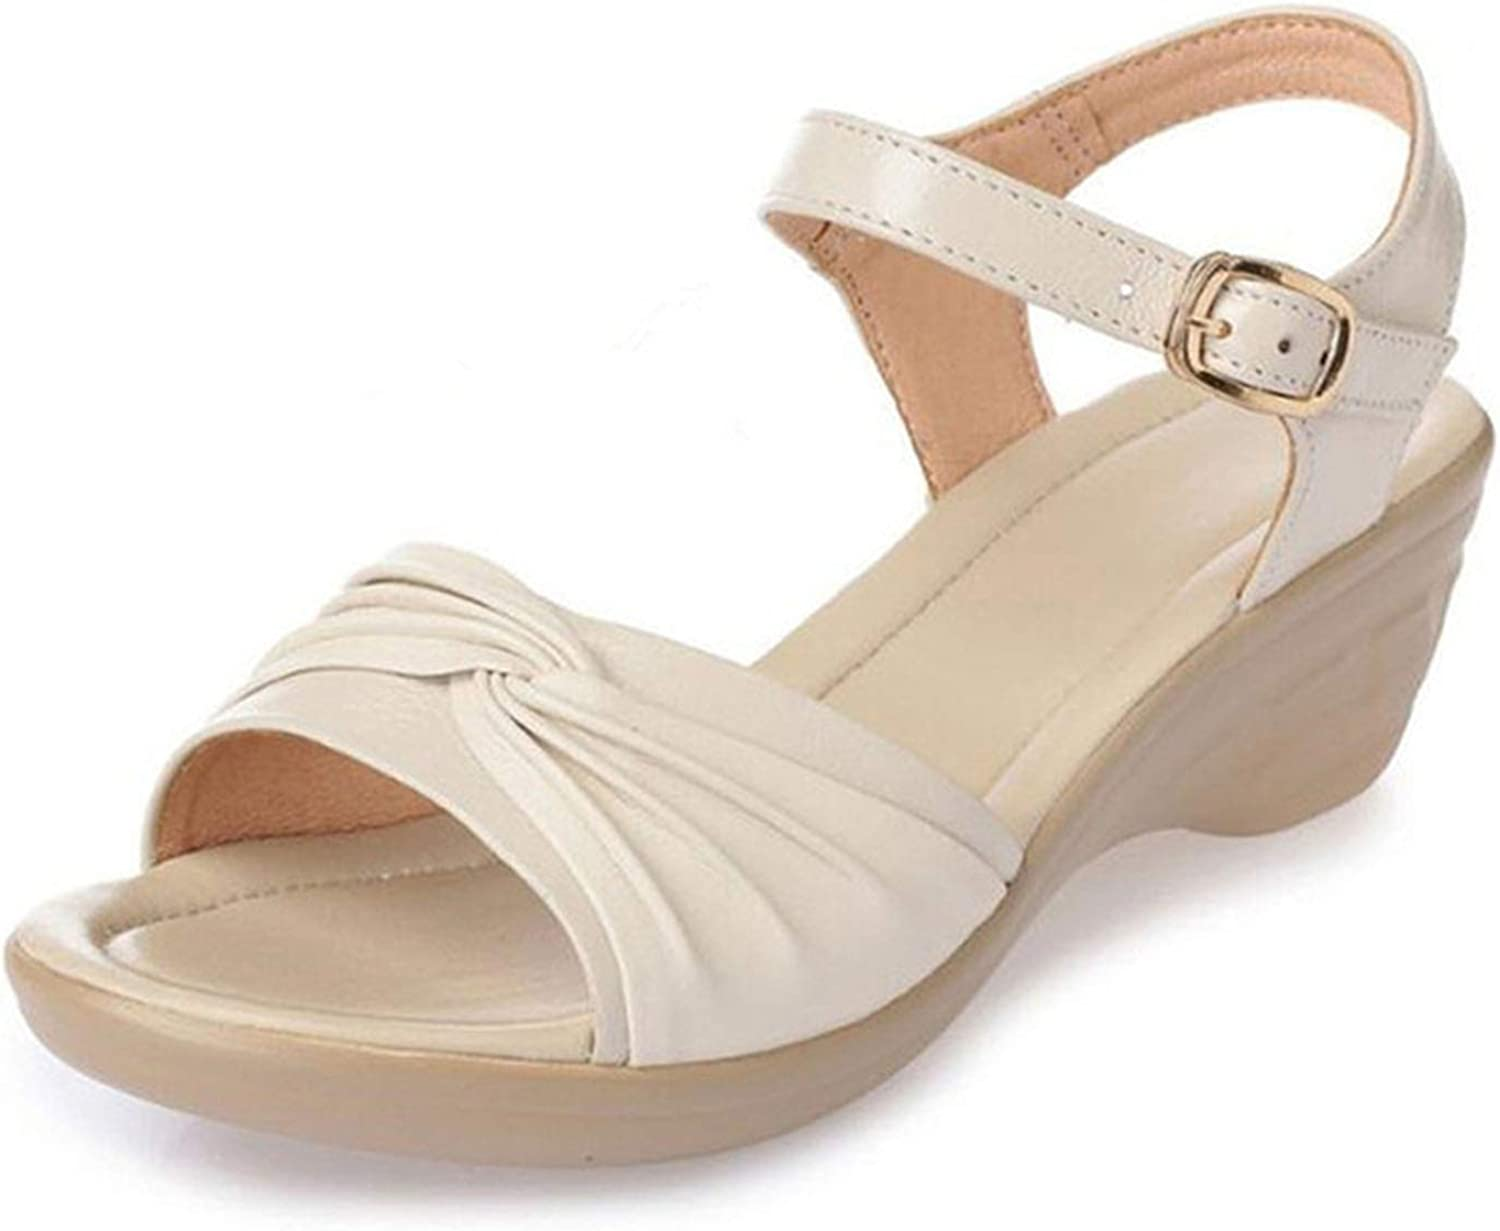 TZJY-Store 2019 New Summer Sandals Genuine Leather Open Toe Sandals Comfortable Sandals